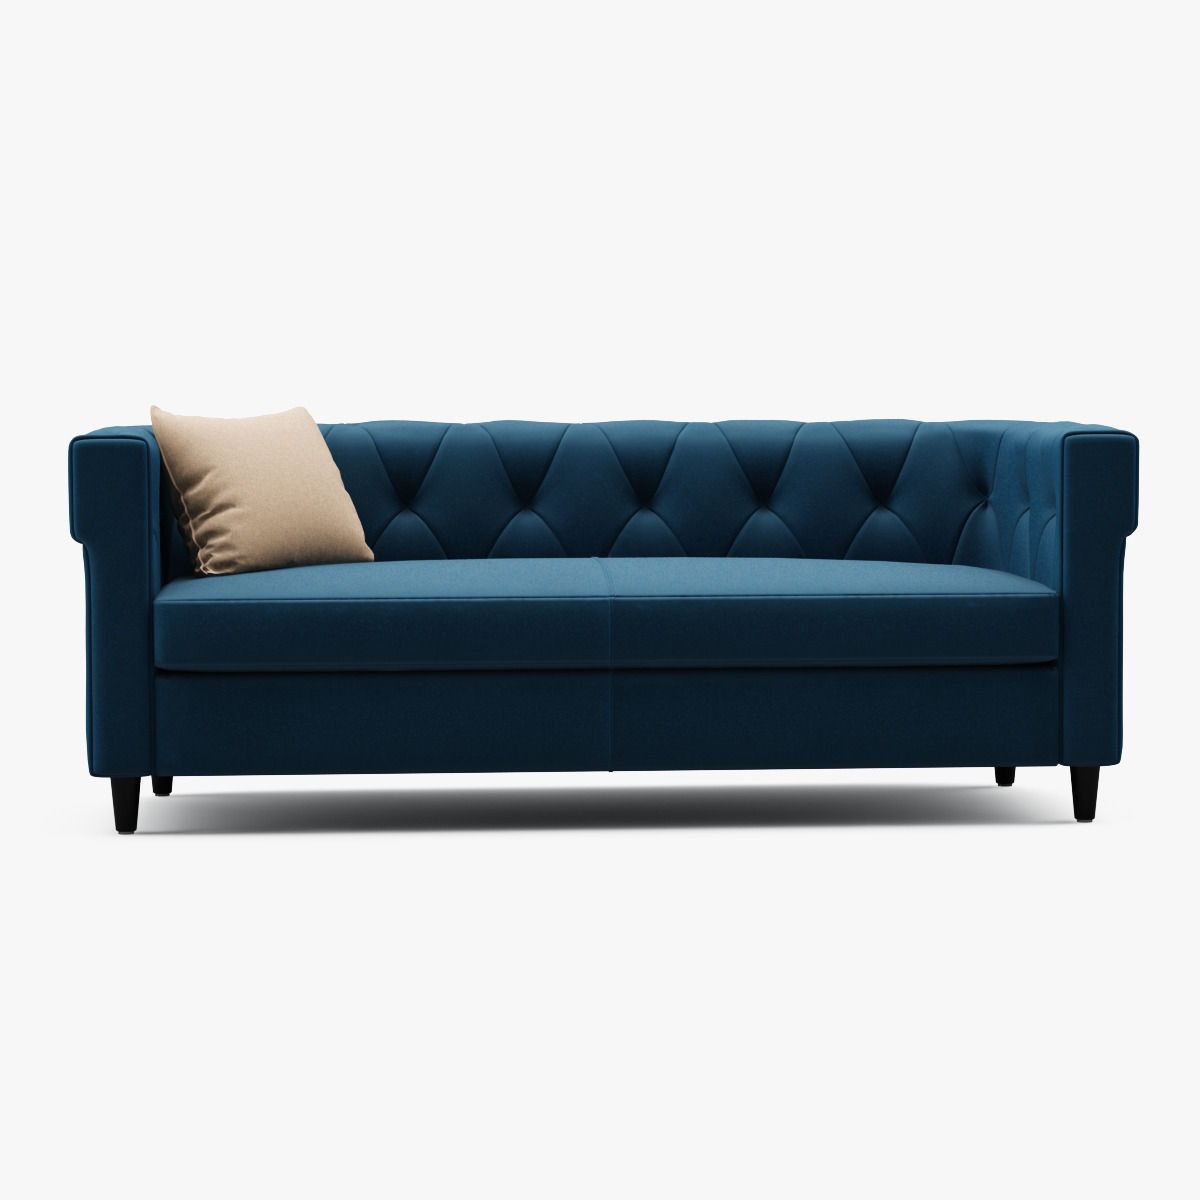 Tremendous Chester Tufted Upholstered Sofa 3D Model Download Free Architecture Designs Grimeyleaguecom